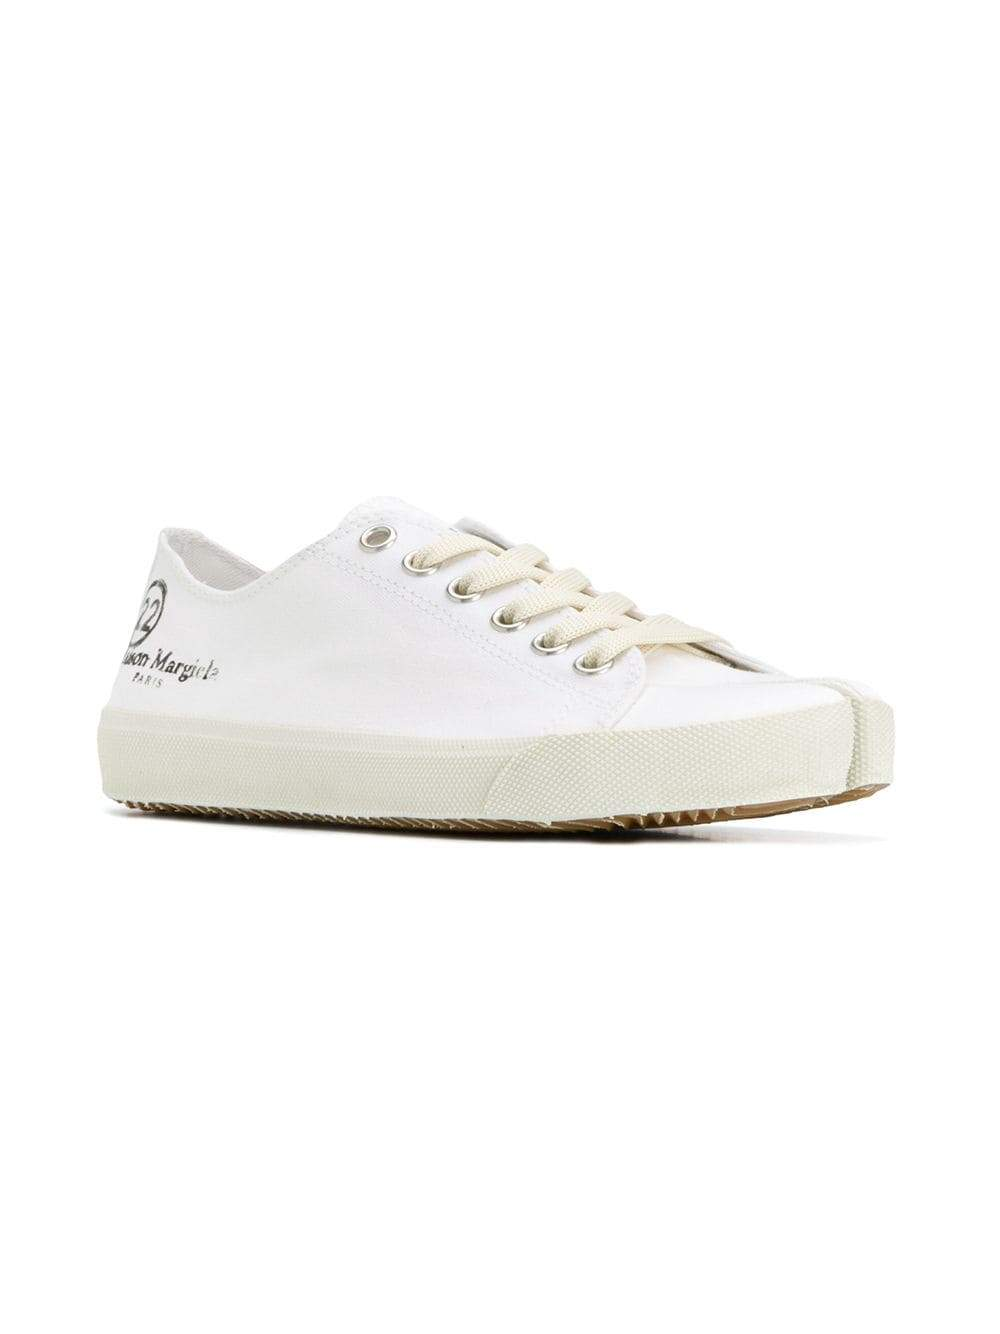 White Tabi Sneakers